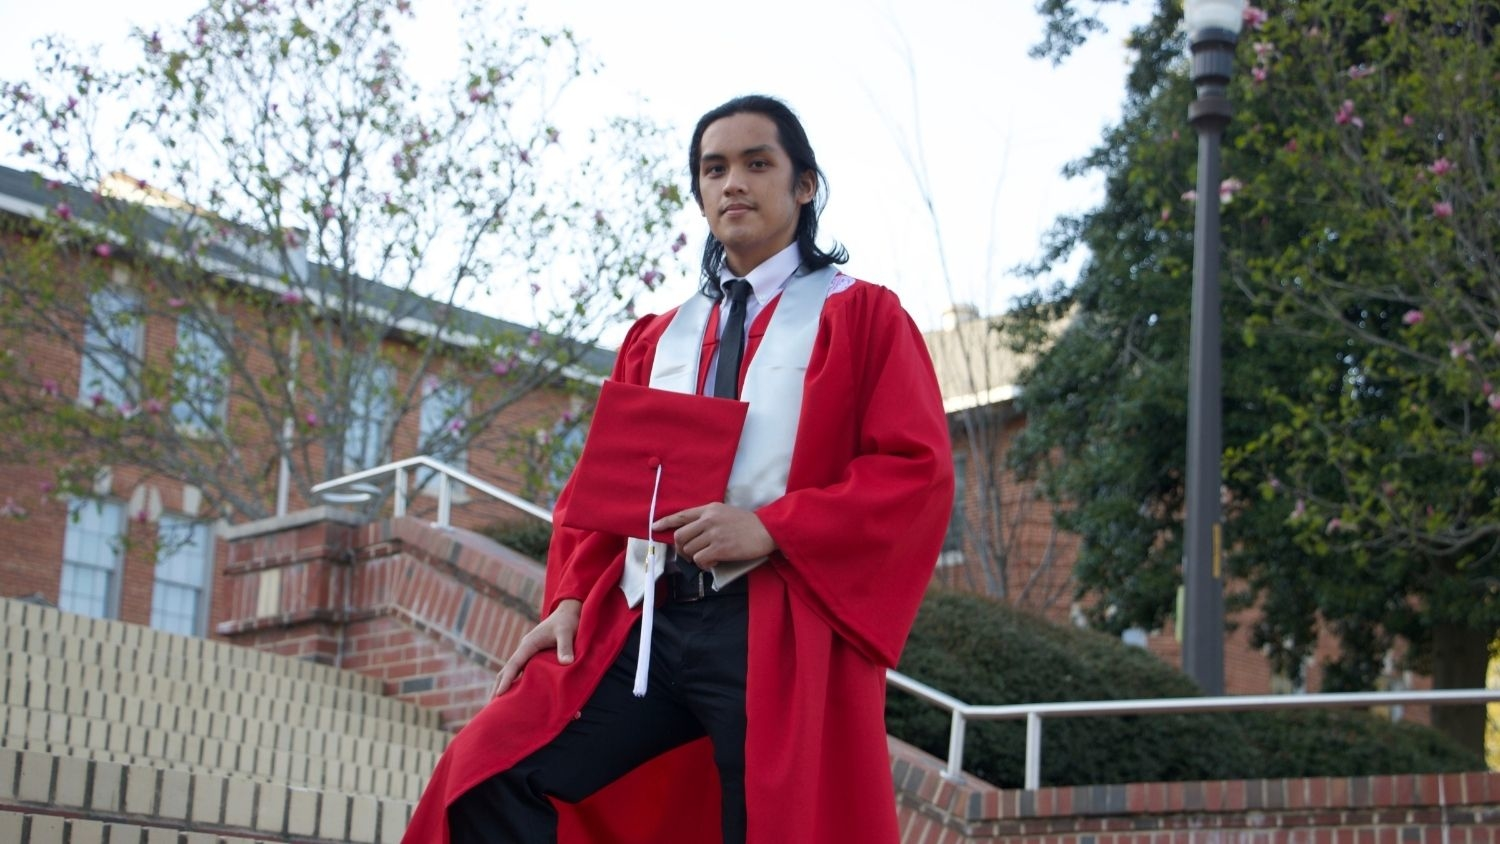 Joshua Pil in Cap and Gown - Graduation to Vocation: Supporting Rare Plant Species in North Carolina - Forestry and Environmental Resources Department at NCState